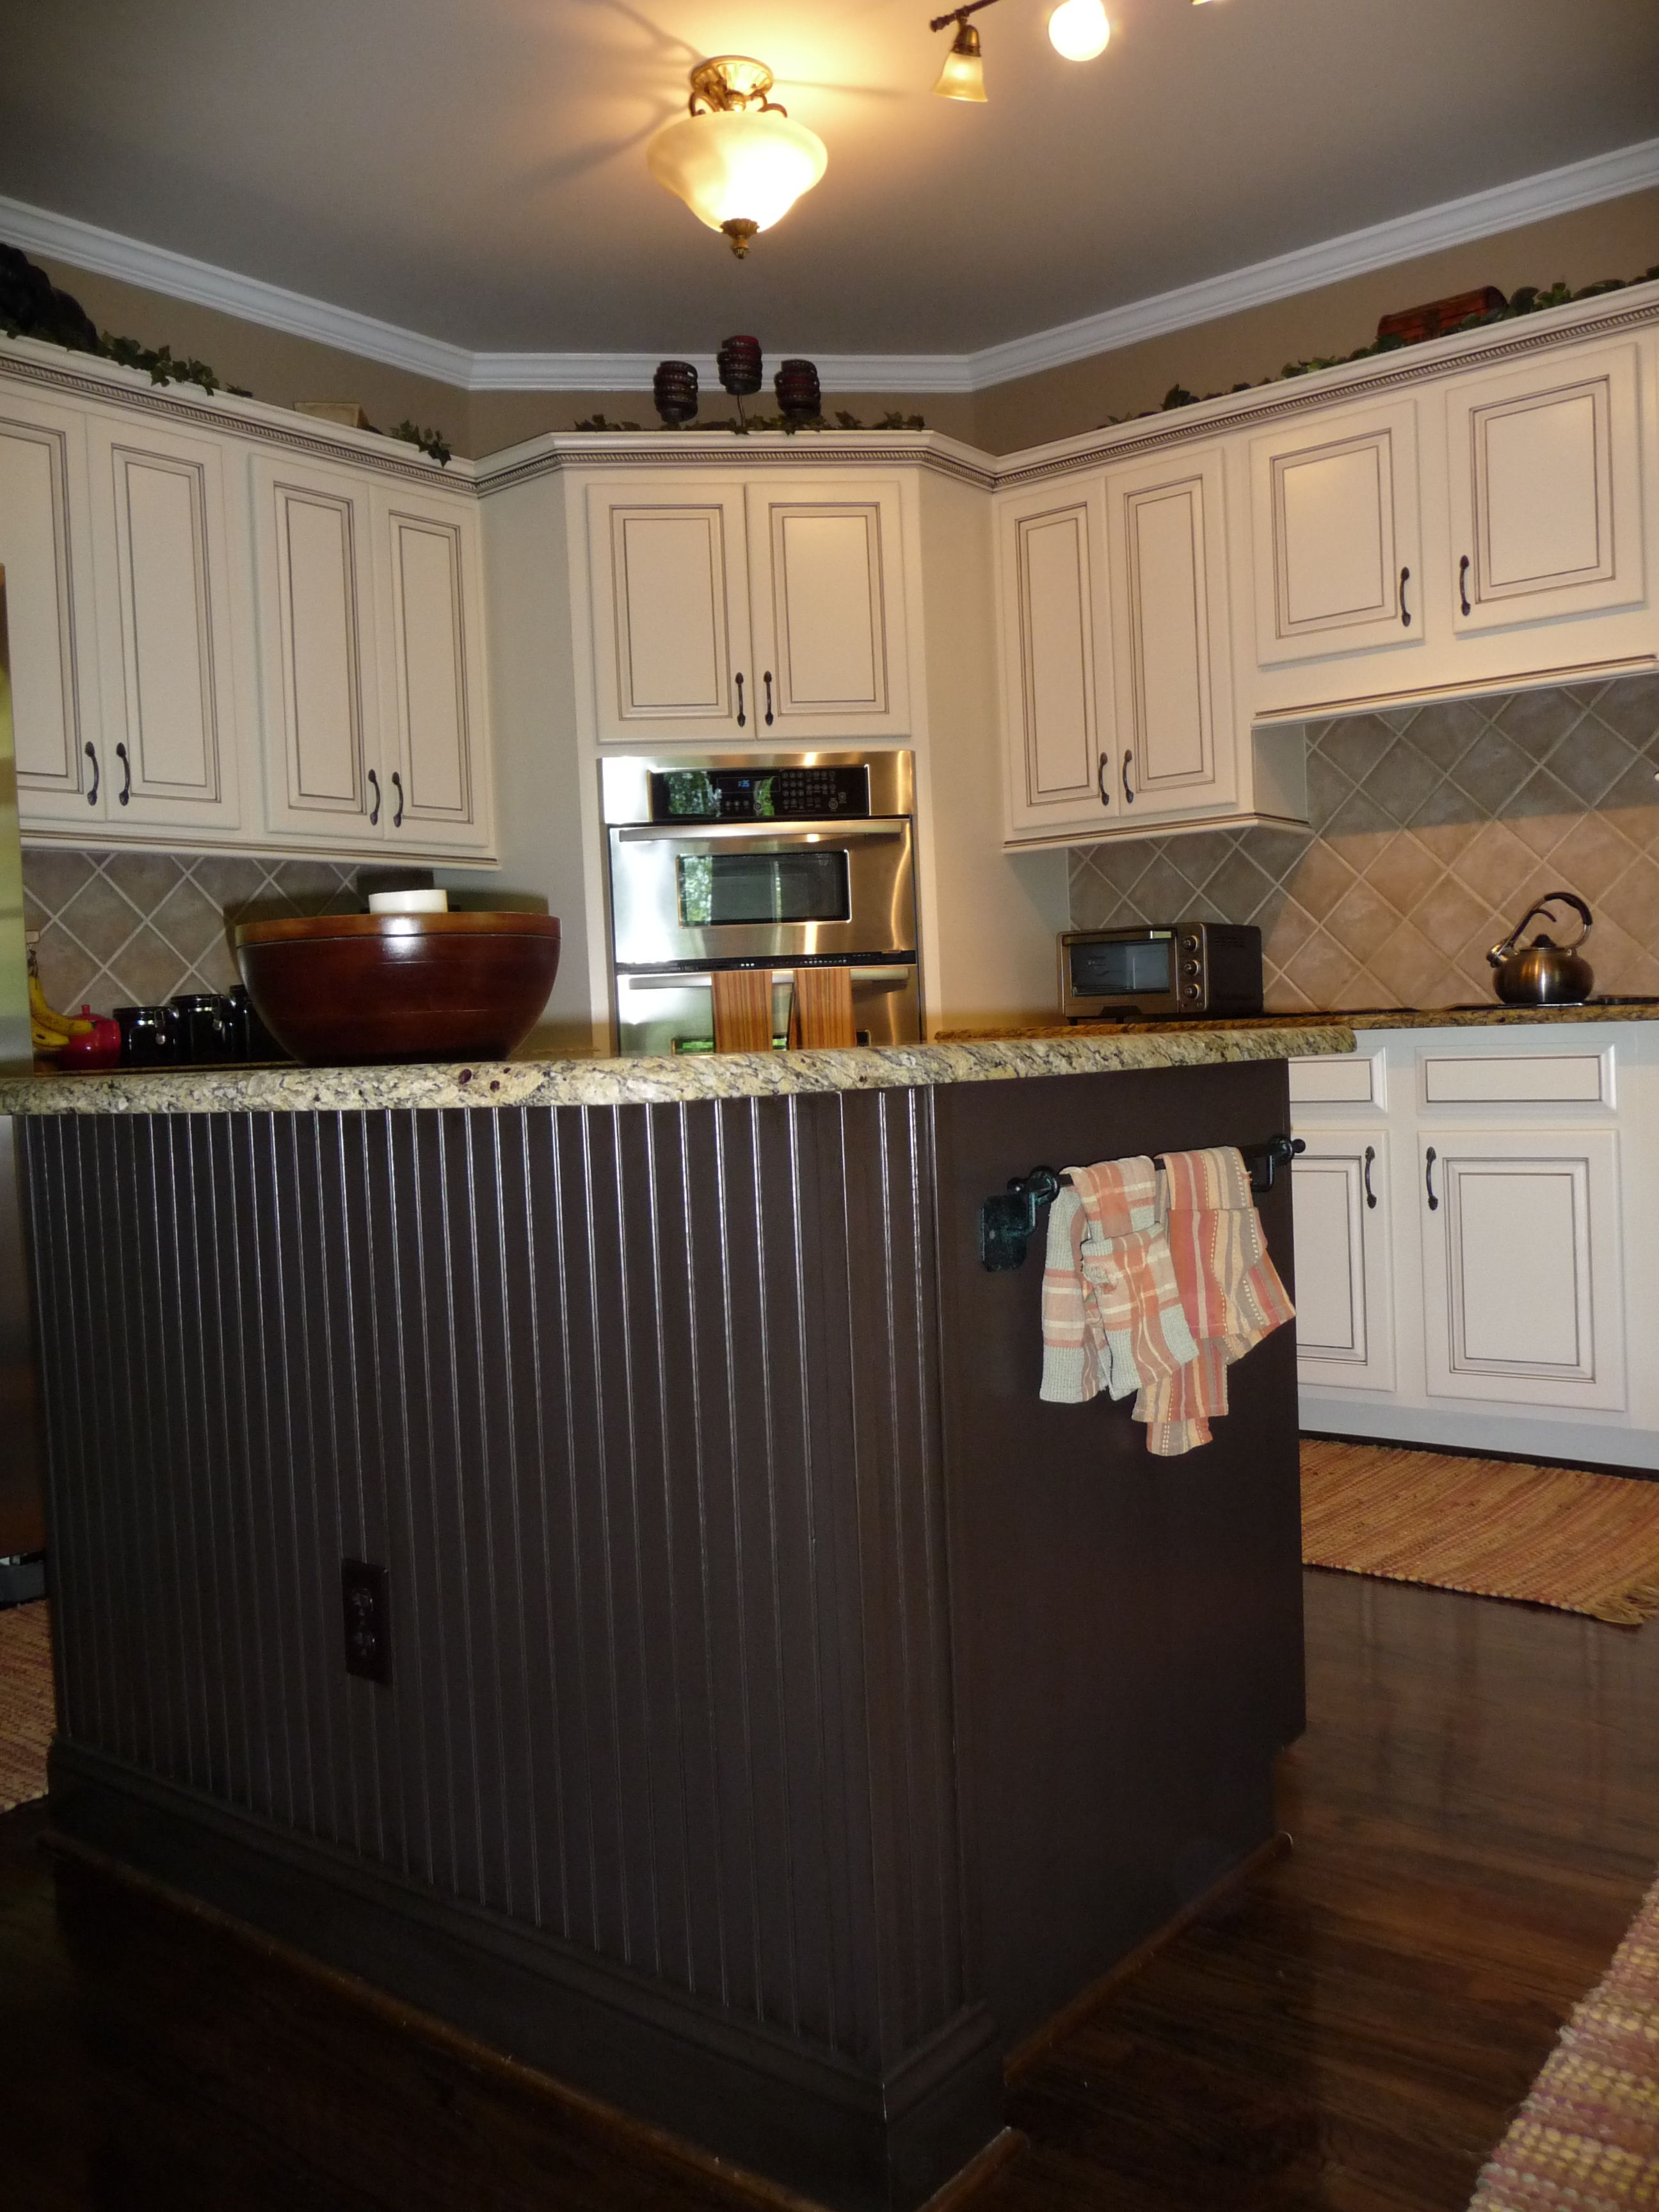 My Dream Kitchen At Last Painted Maple Cabinets Antique White Almond Added Light Rail At The Bottom And Rope Crown Mou Kitchen Redo Kitchen Remodel Kitchen